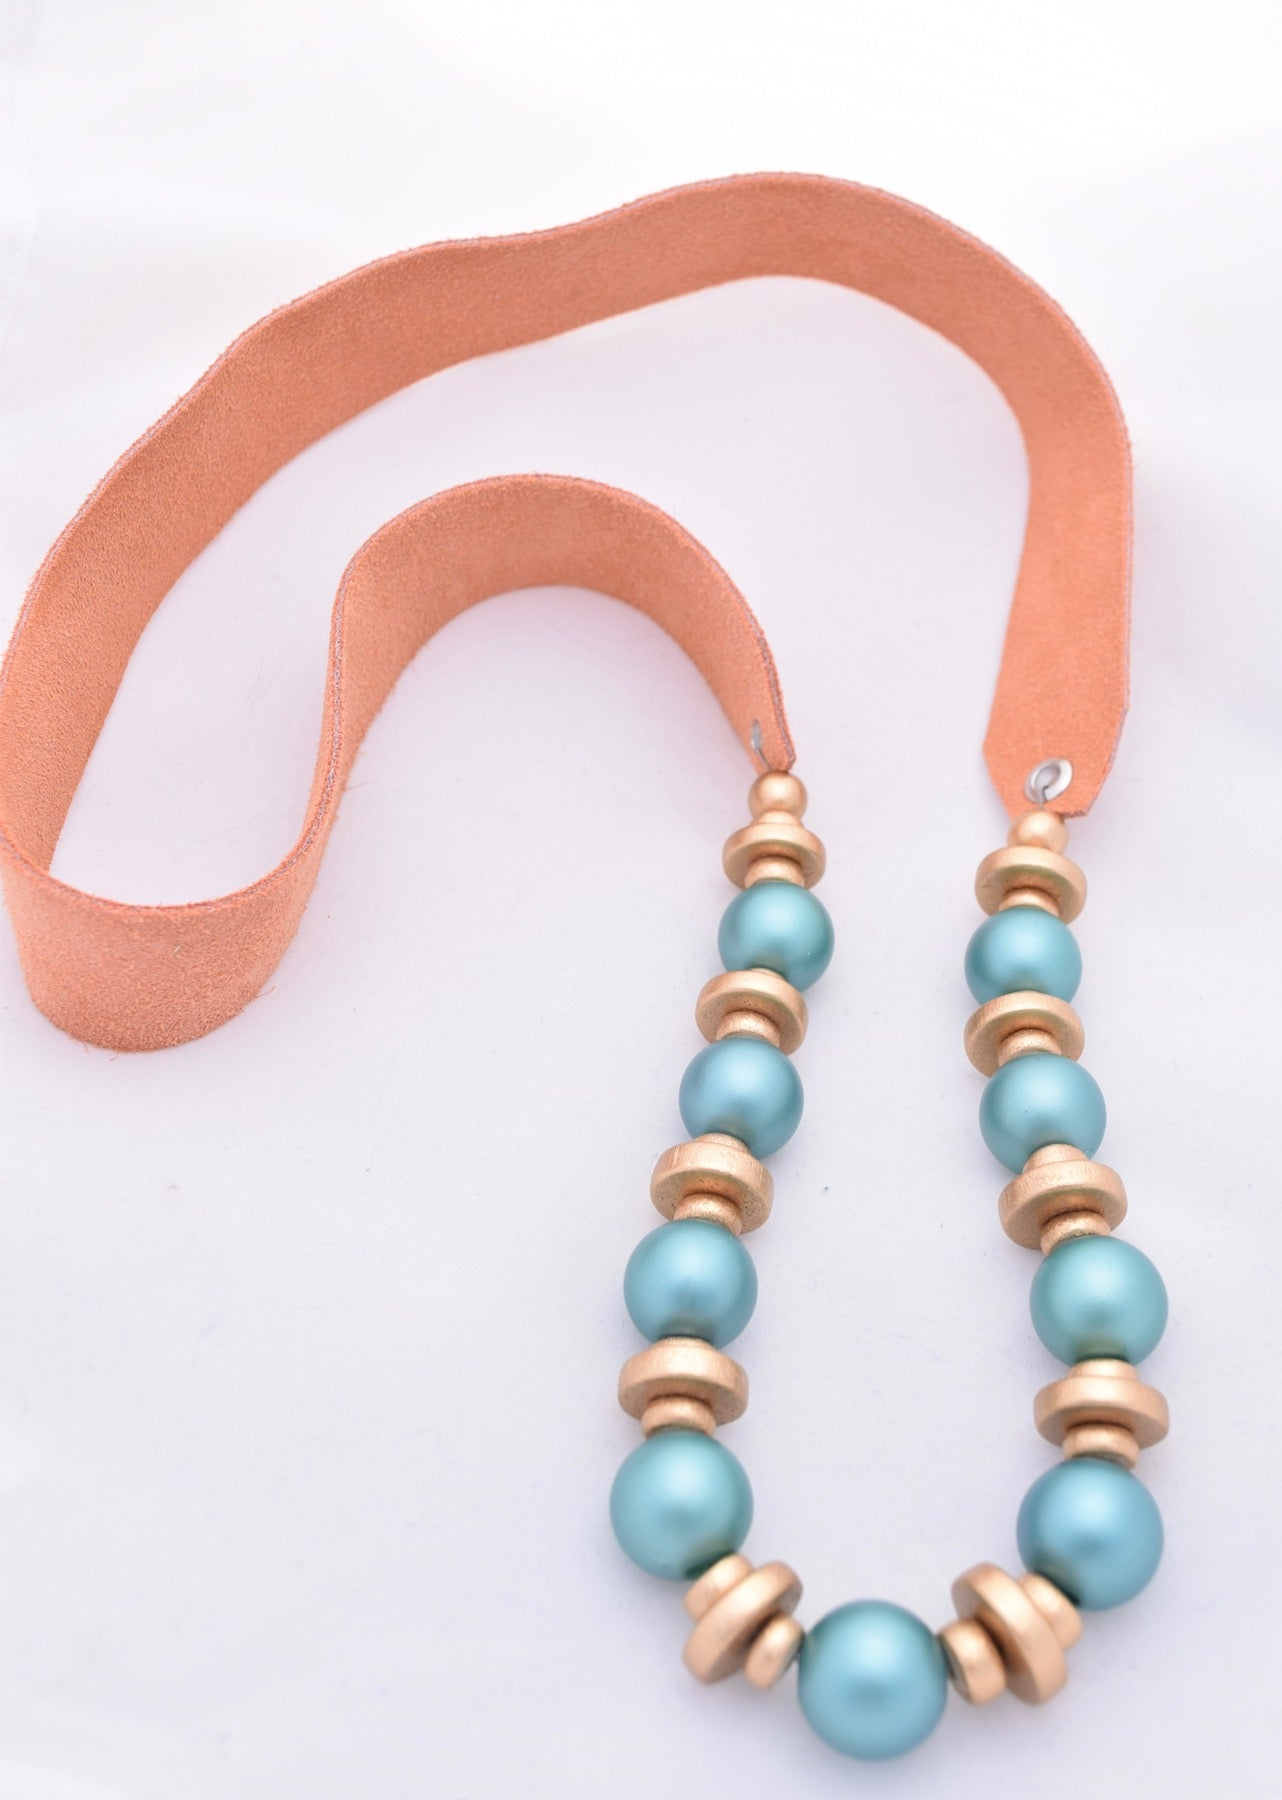 Turquoise Pearl and Gold Necklace on Peach Leather Strap